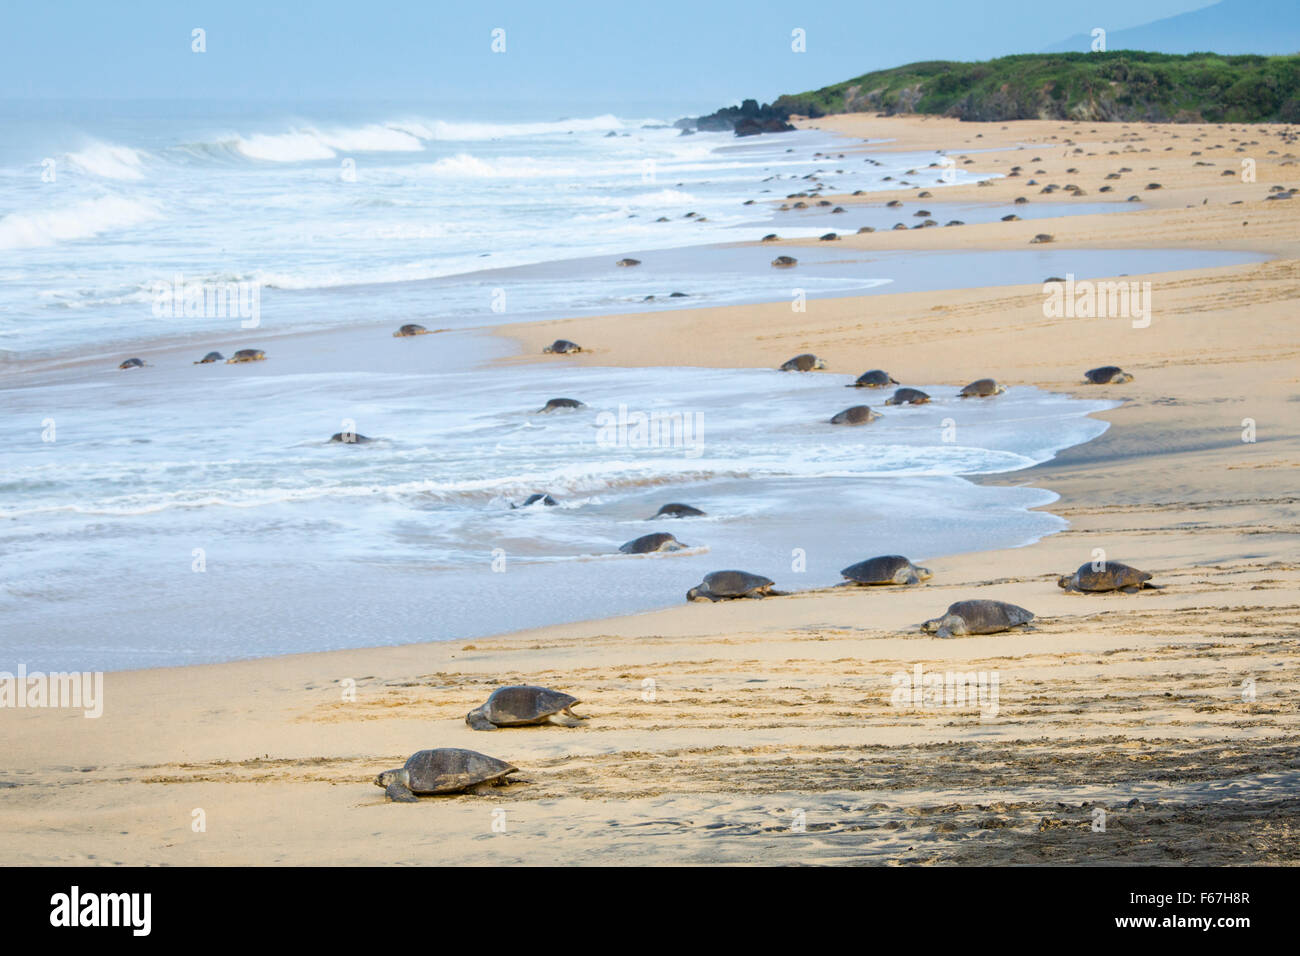 The tiny beach of Ixtapilla, Michoacan, Mexico fills with hundreds of nesting Olive Ridley sea turtles as dawn breaks. - Stock Image